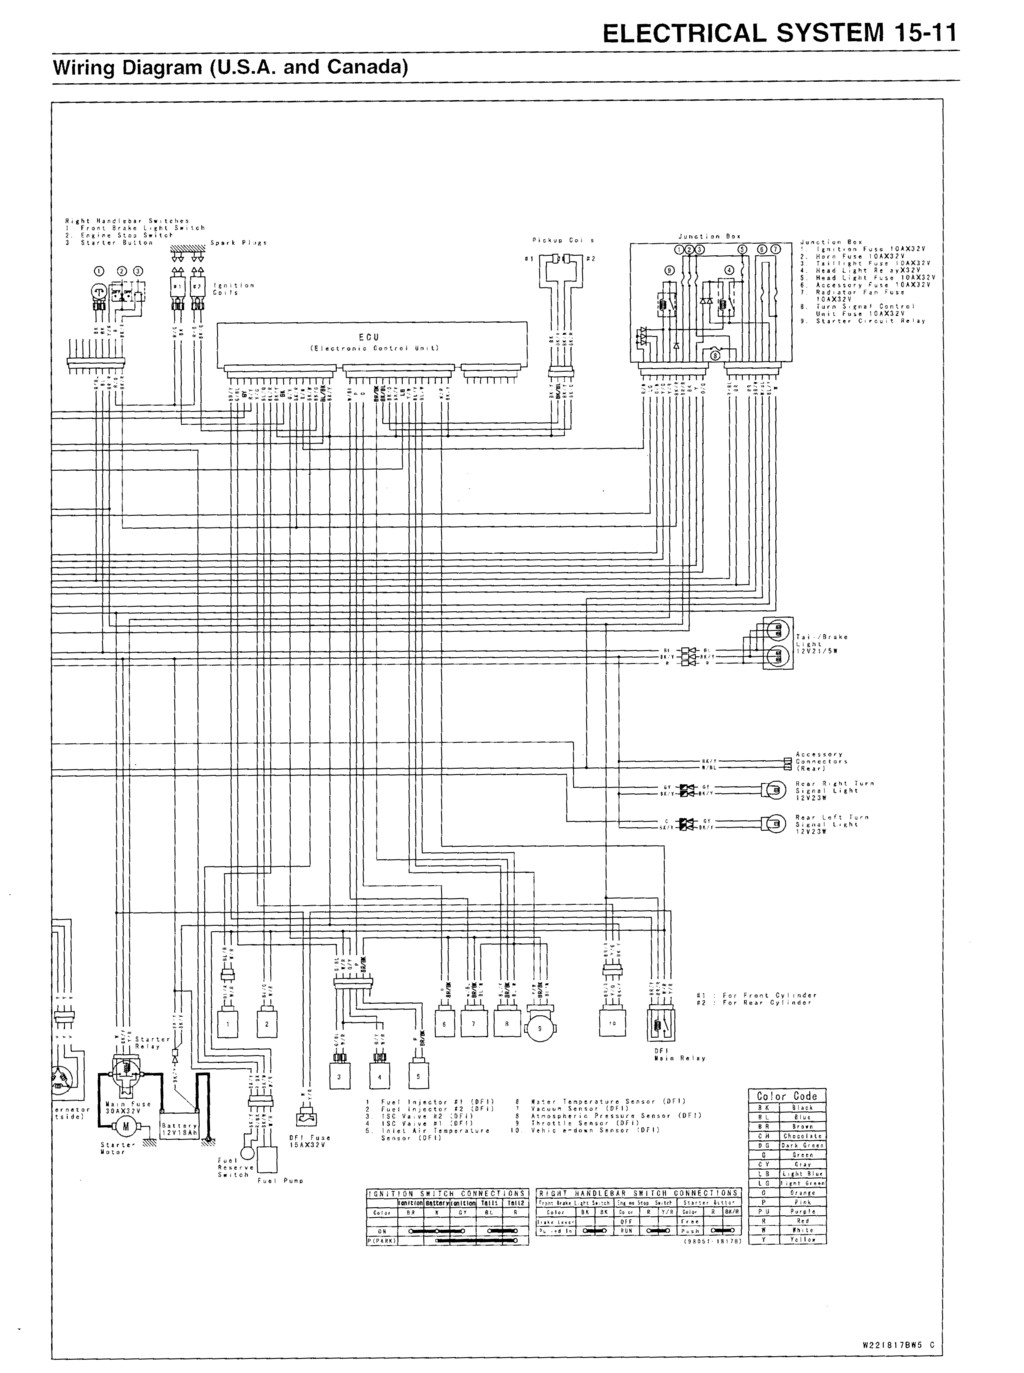 nomad_wiring_diagram_carbed_p2 vulcan wiring diagrams gadget's fixit page kawasaki vulcan 800 wiring diagram at edmiracle.co